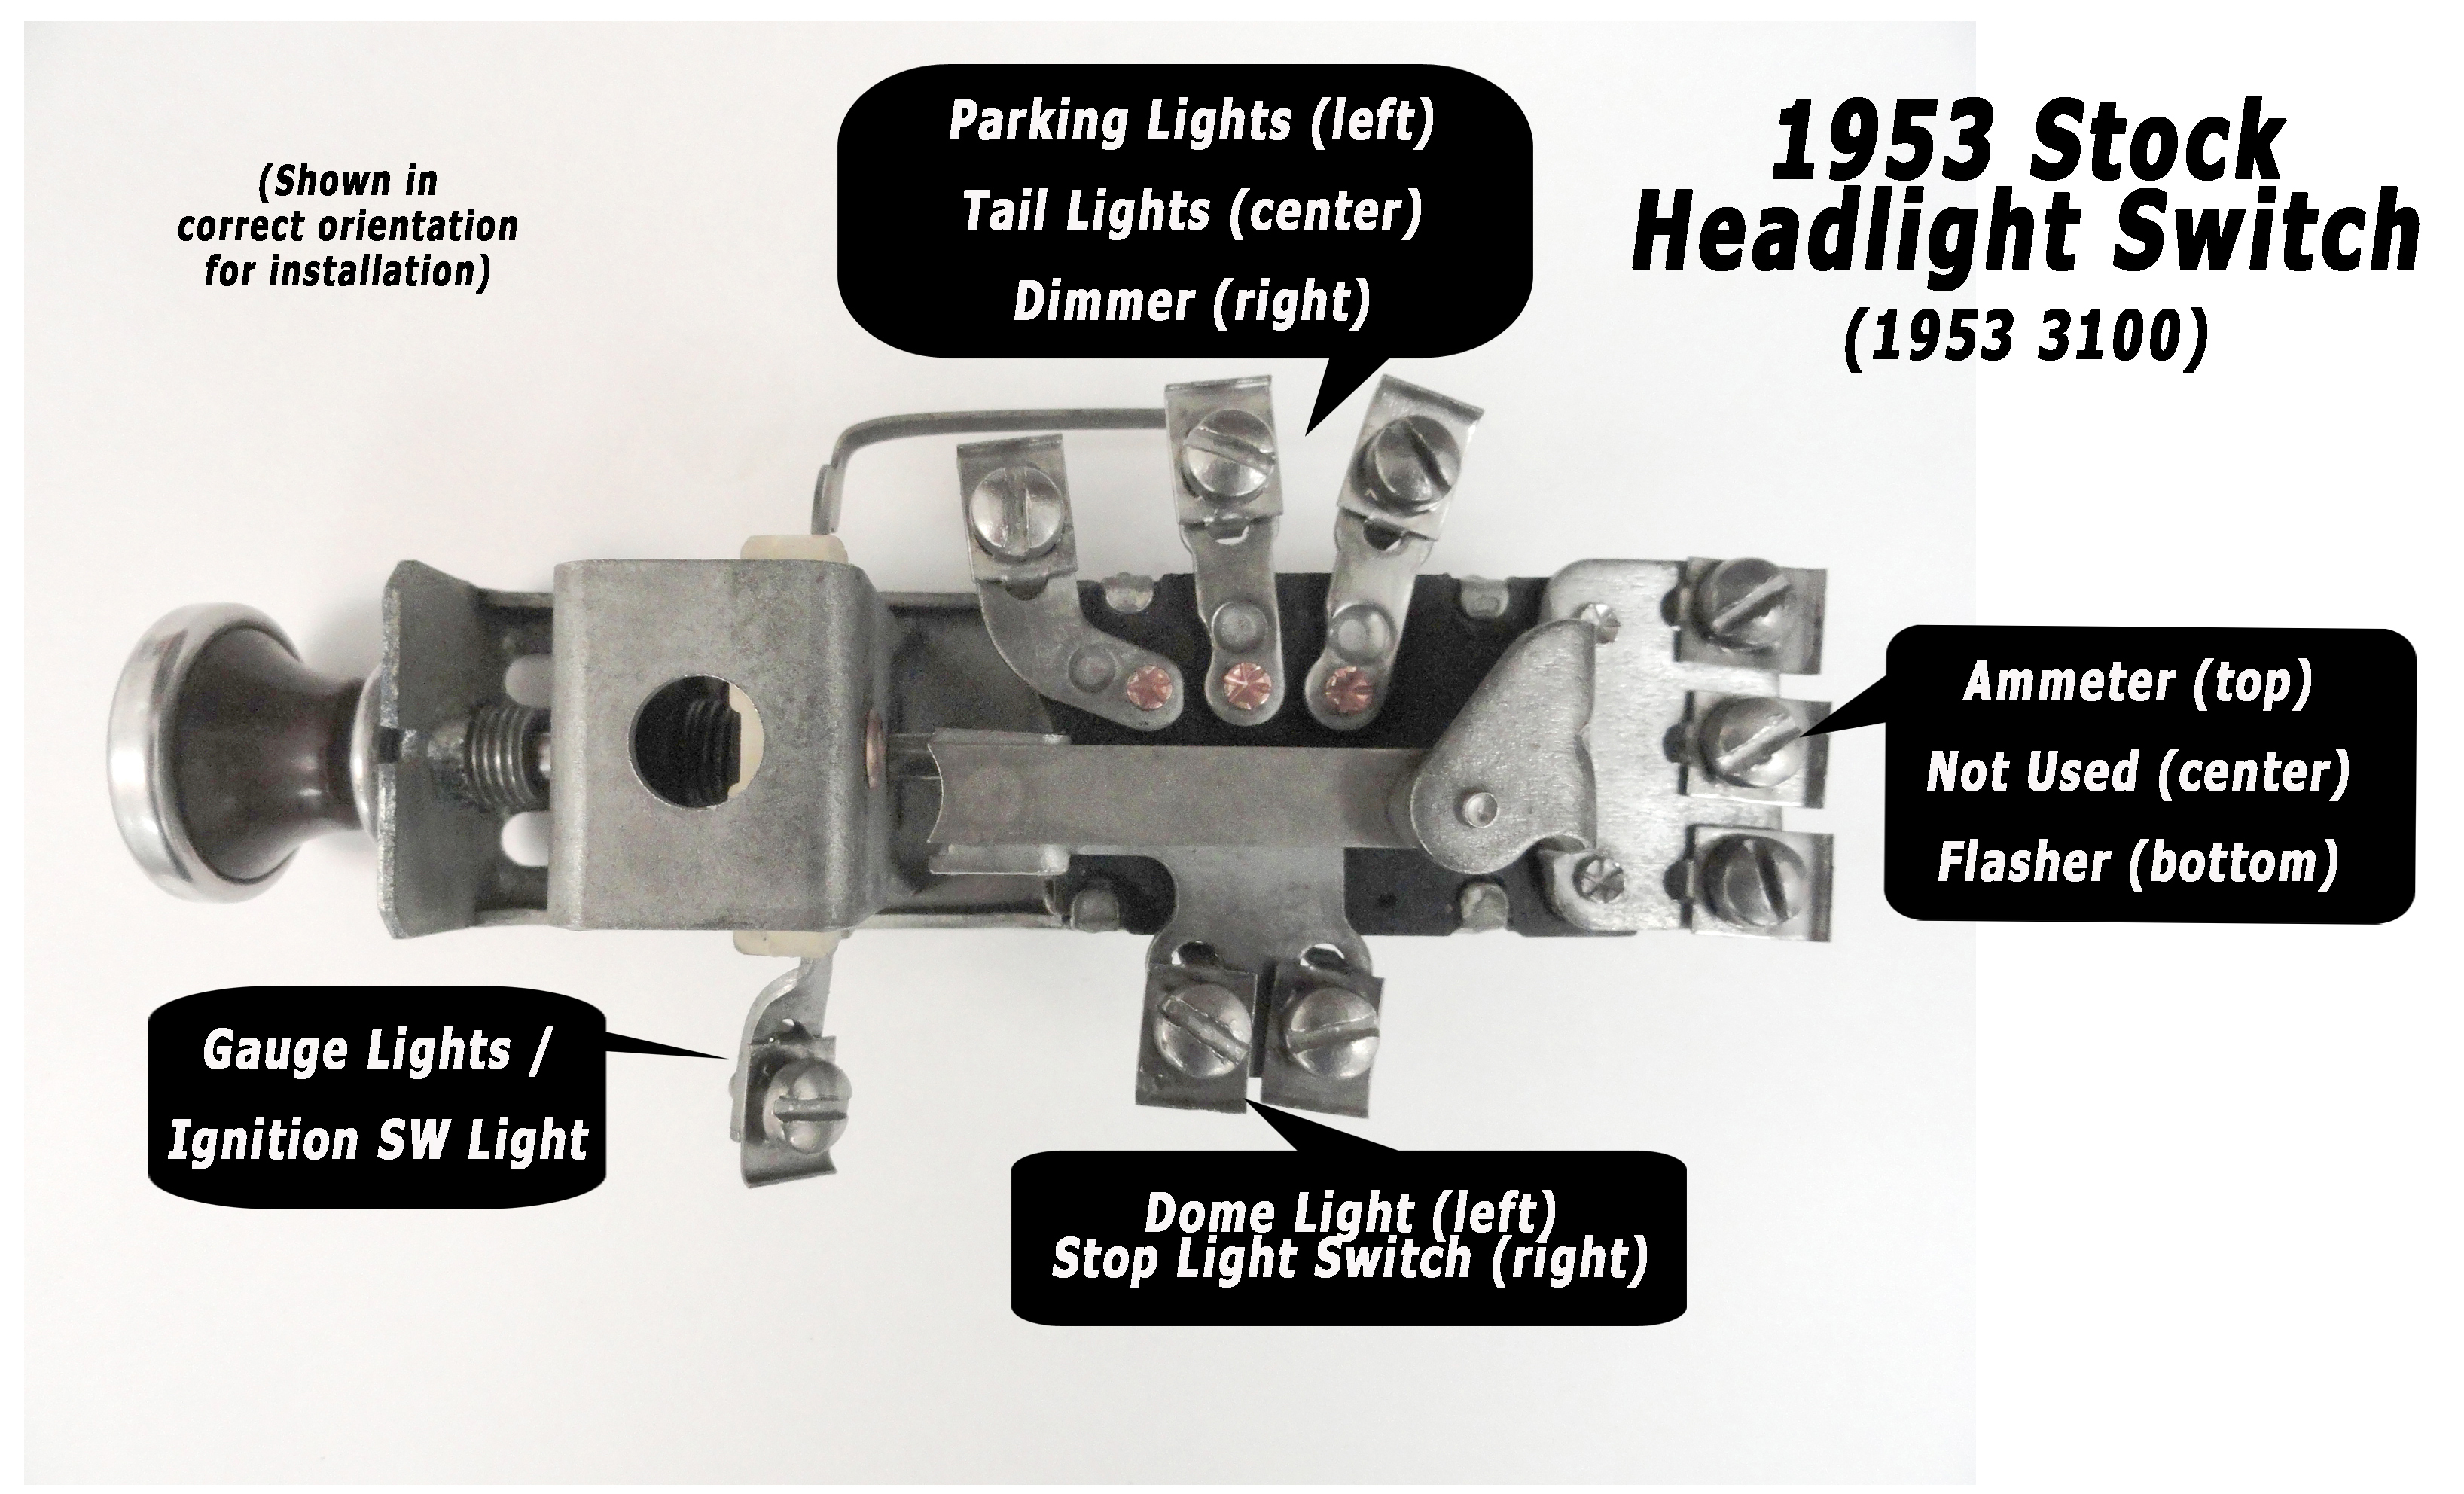 1950 Chevy Headlight Switch Wiring Diagram | Manual E-Books - Chevy Headlight Switch Wiring Diagram